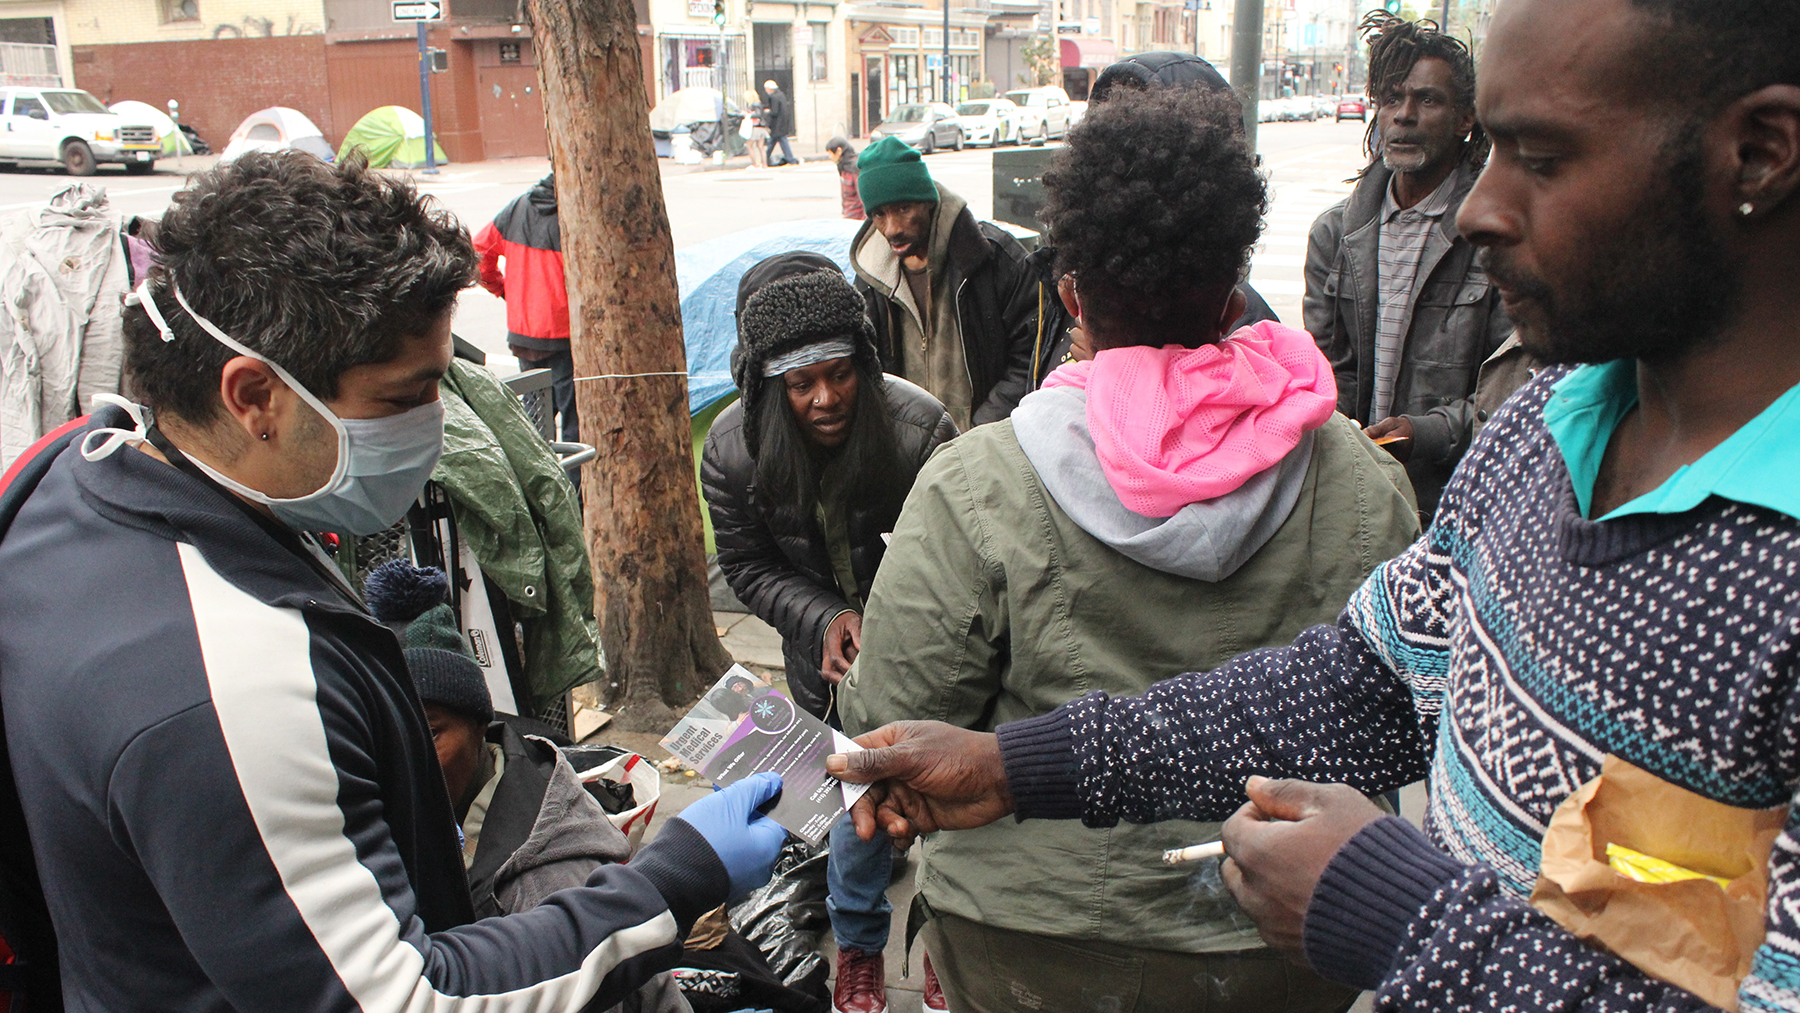 A San Francisco Community Health Center staff member distributes pamphlets to people in San Francisco's Tenderloin district. (Photo courtesy of San Francisco Community Health Center)